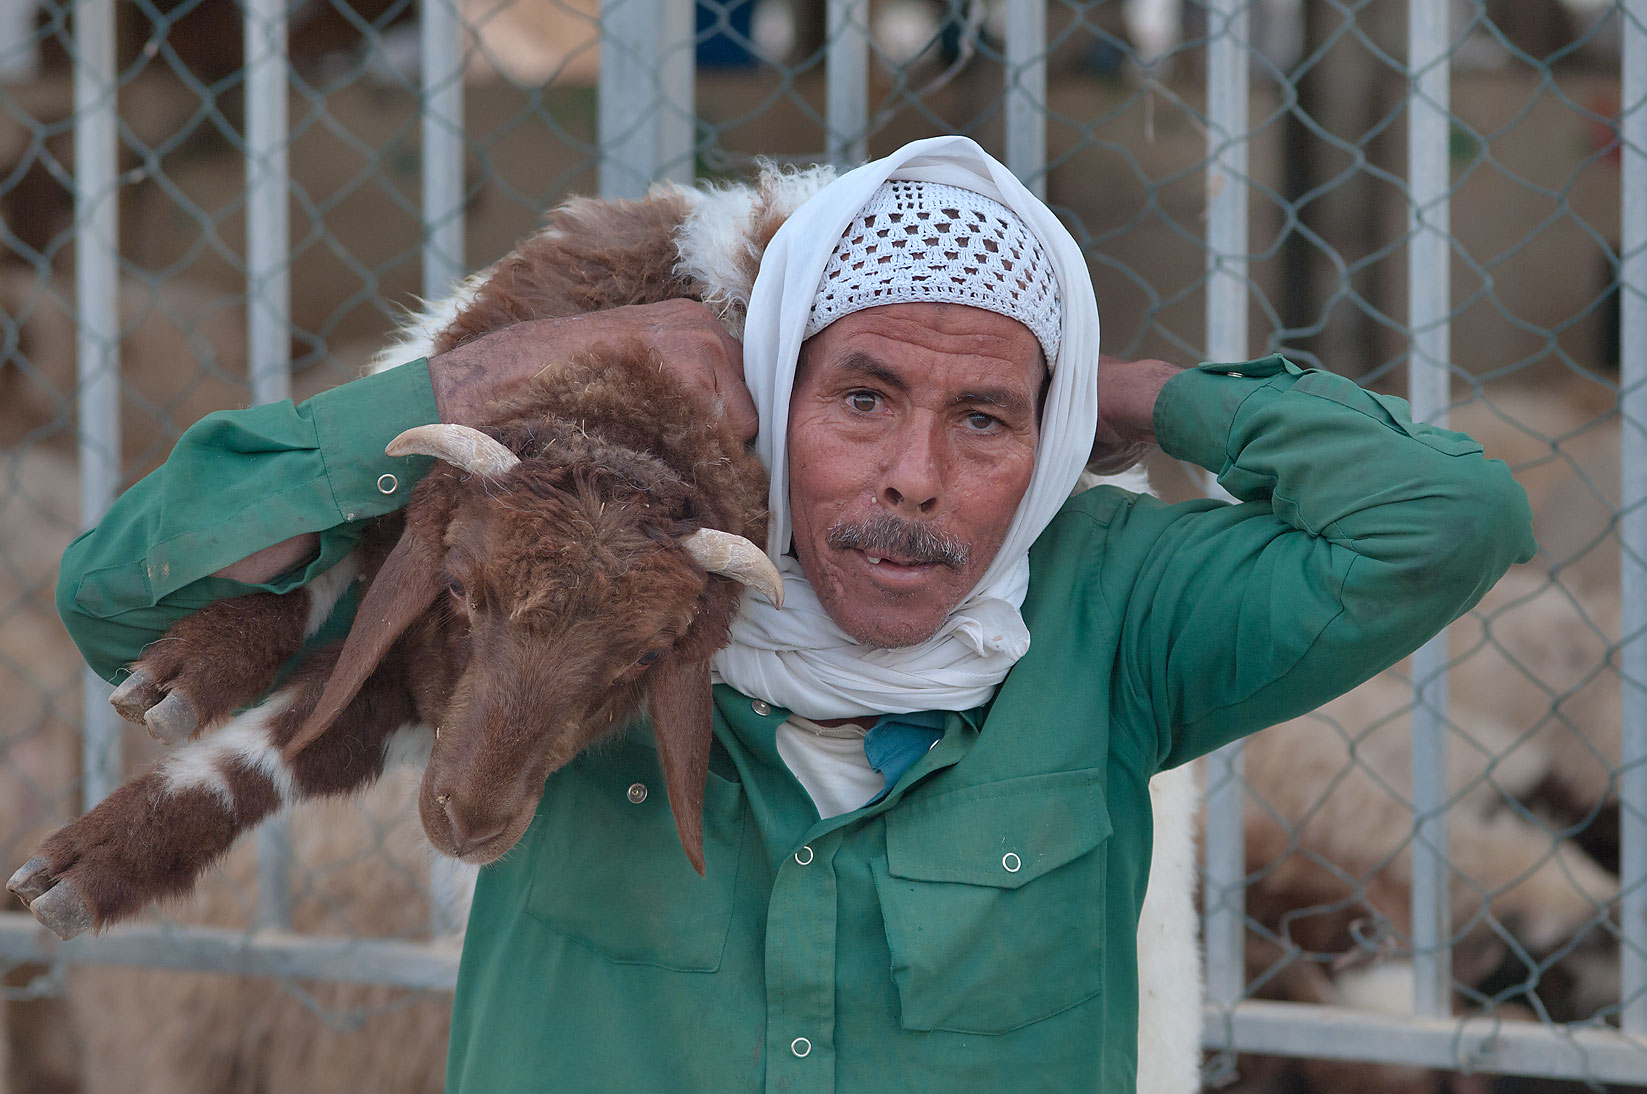 A person carrying a goat in Sheep Market, Wholesale Markets area. Doha, Qatar